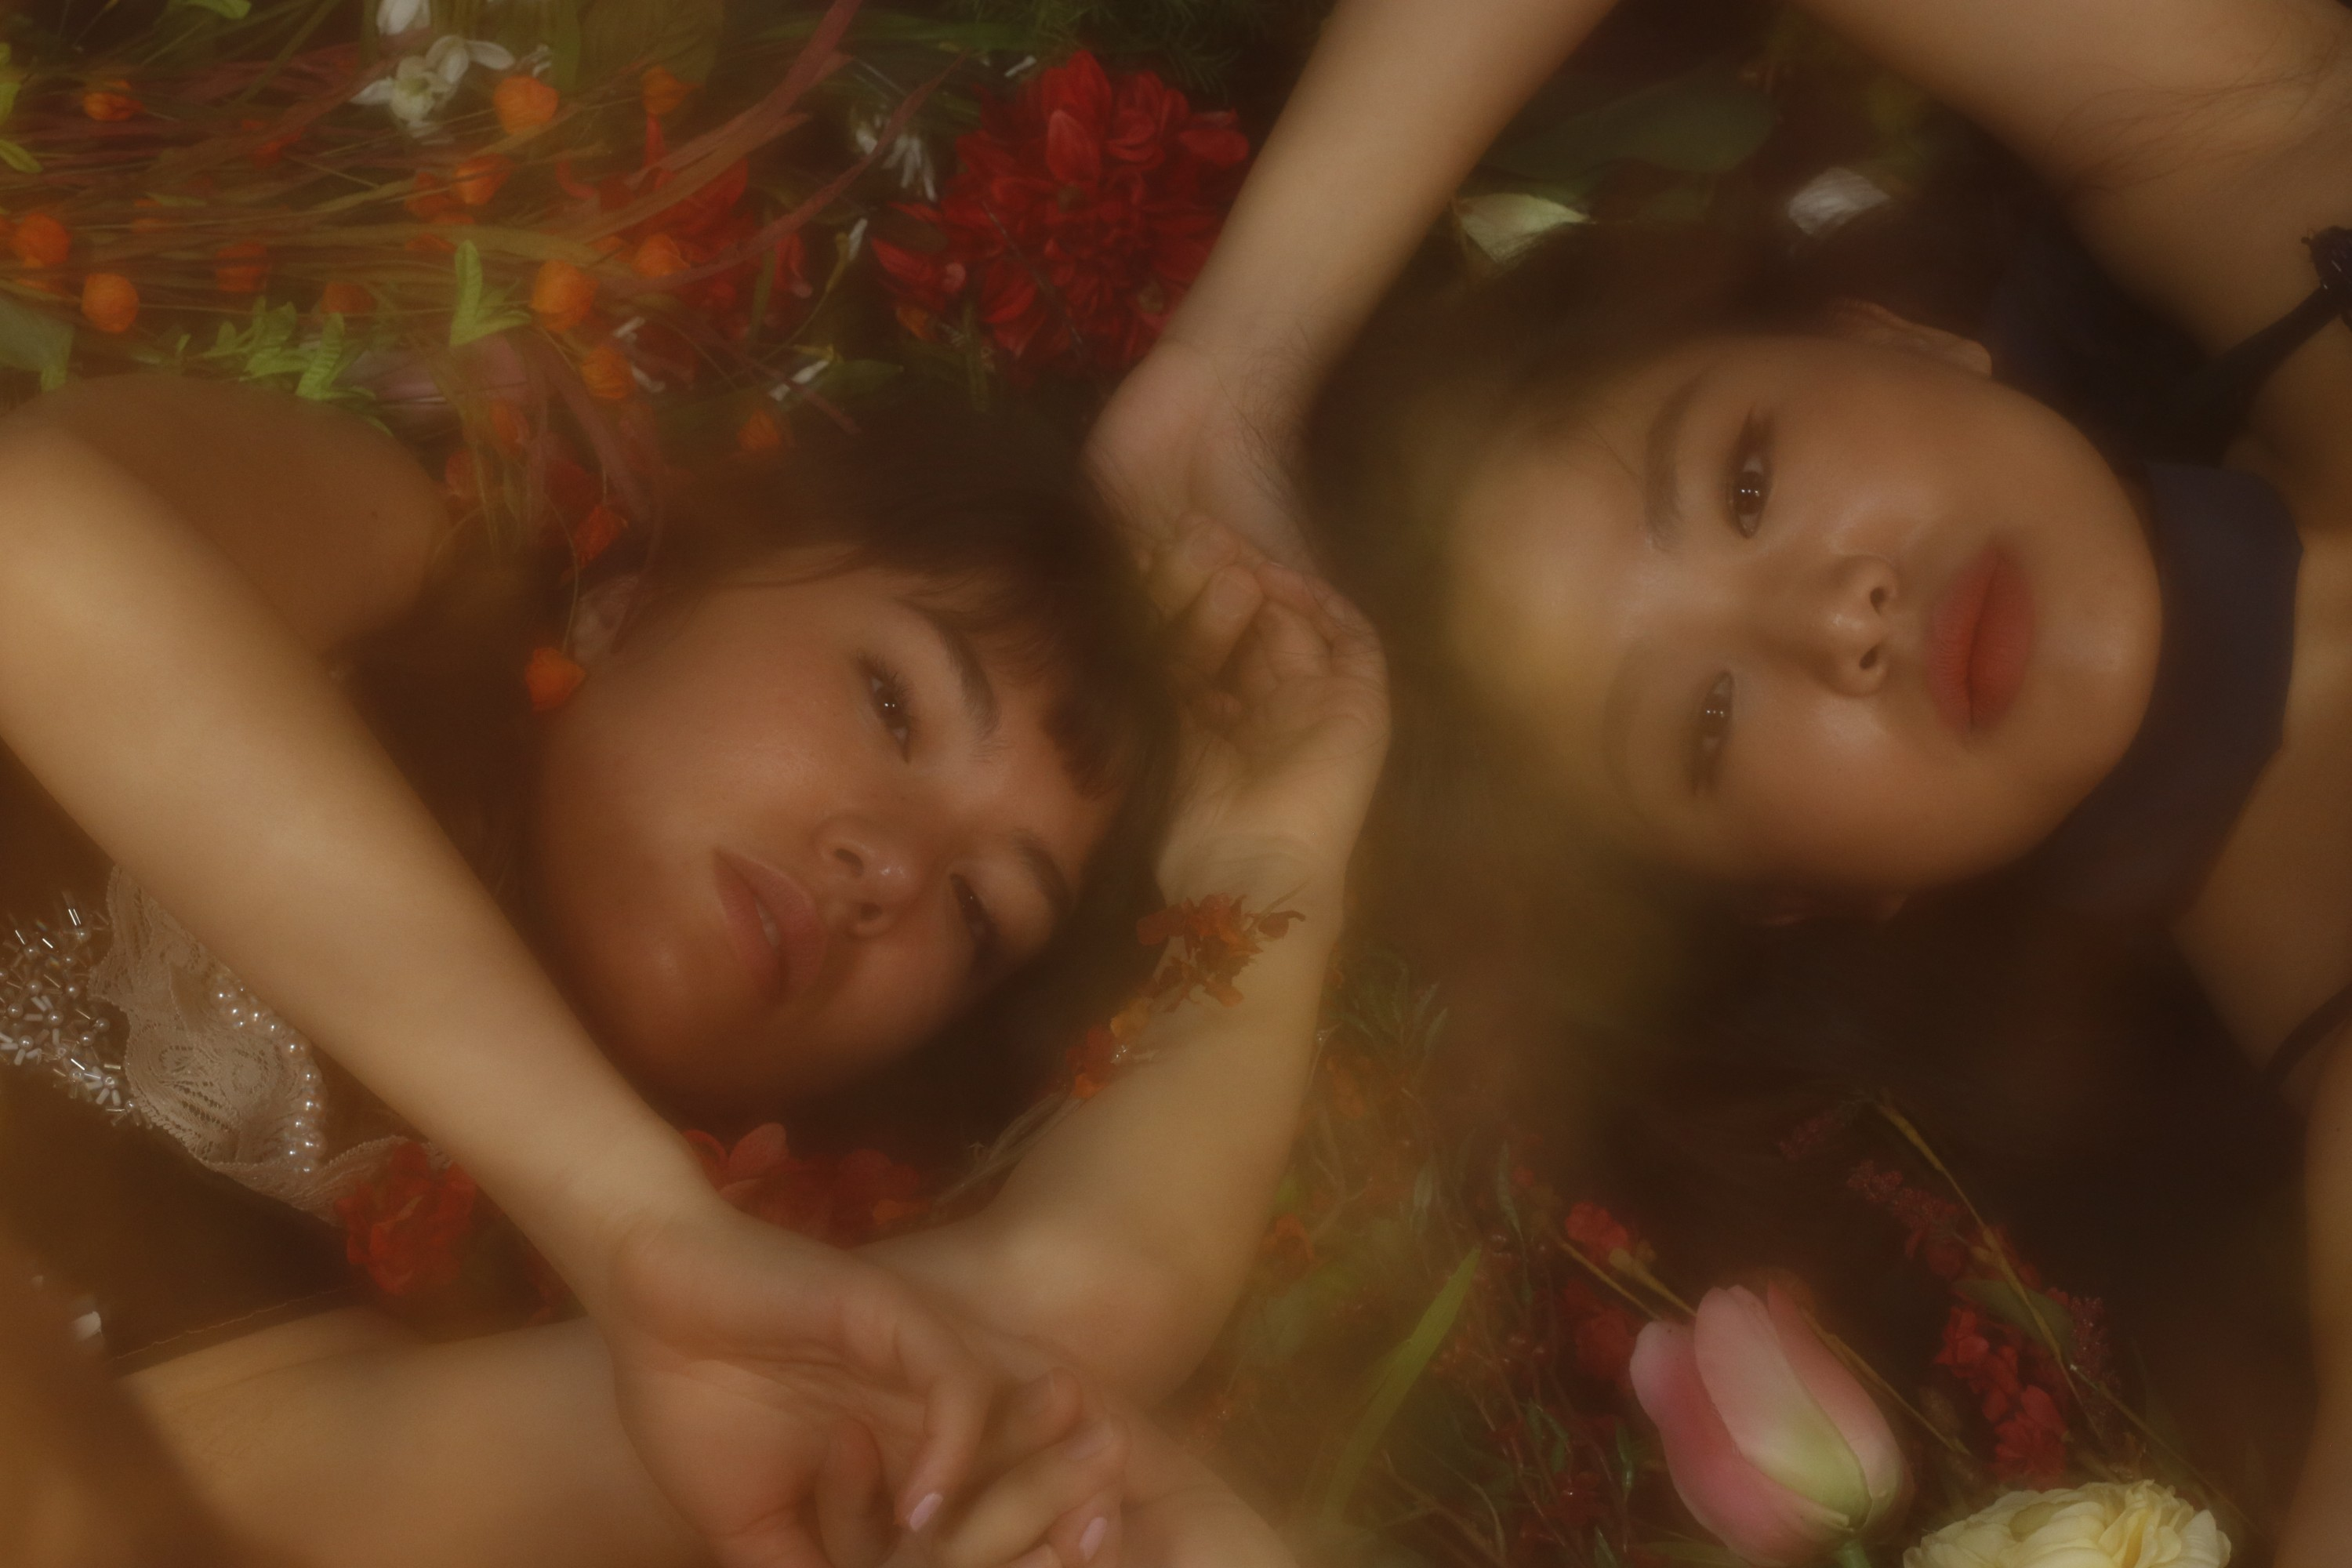 Two girls lie under a film seemingly under a layer of water. They grasp hands over their heads and look directly at the camera.